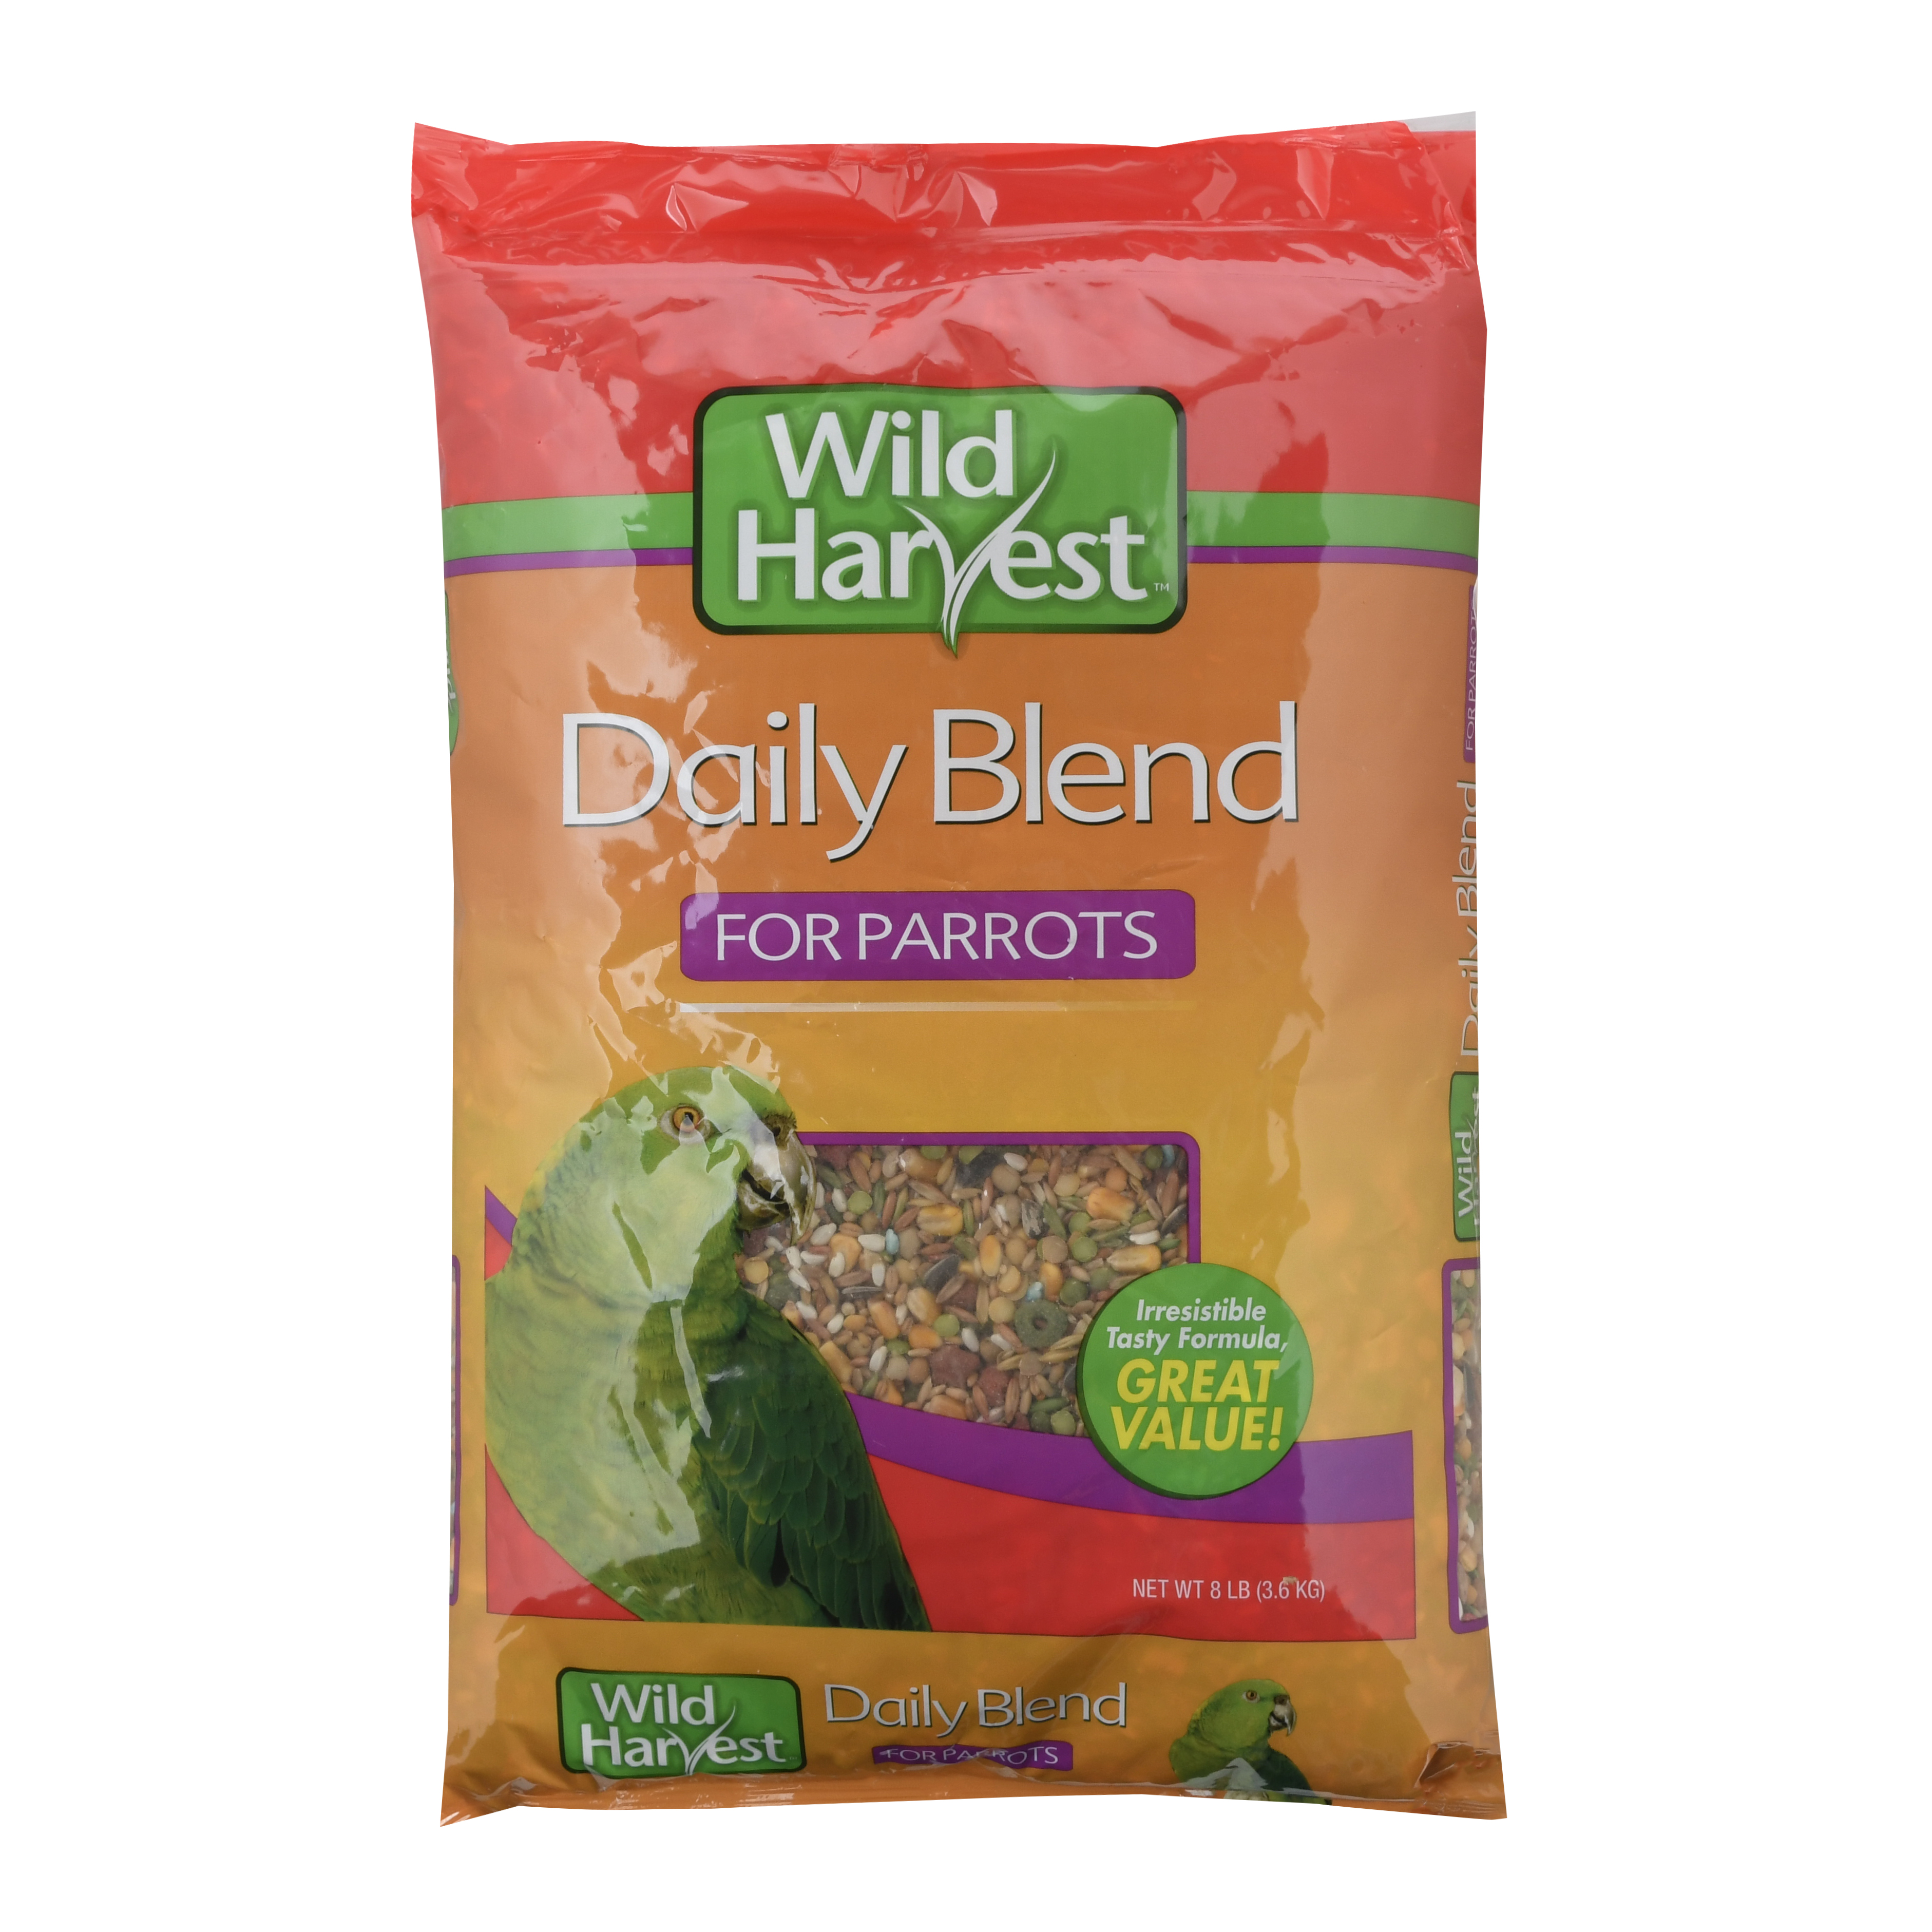 Wild Harvest Daily Blend Parrot 8lbs